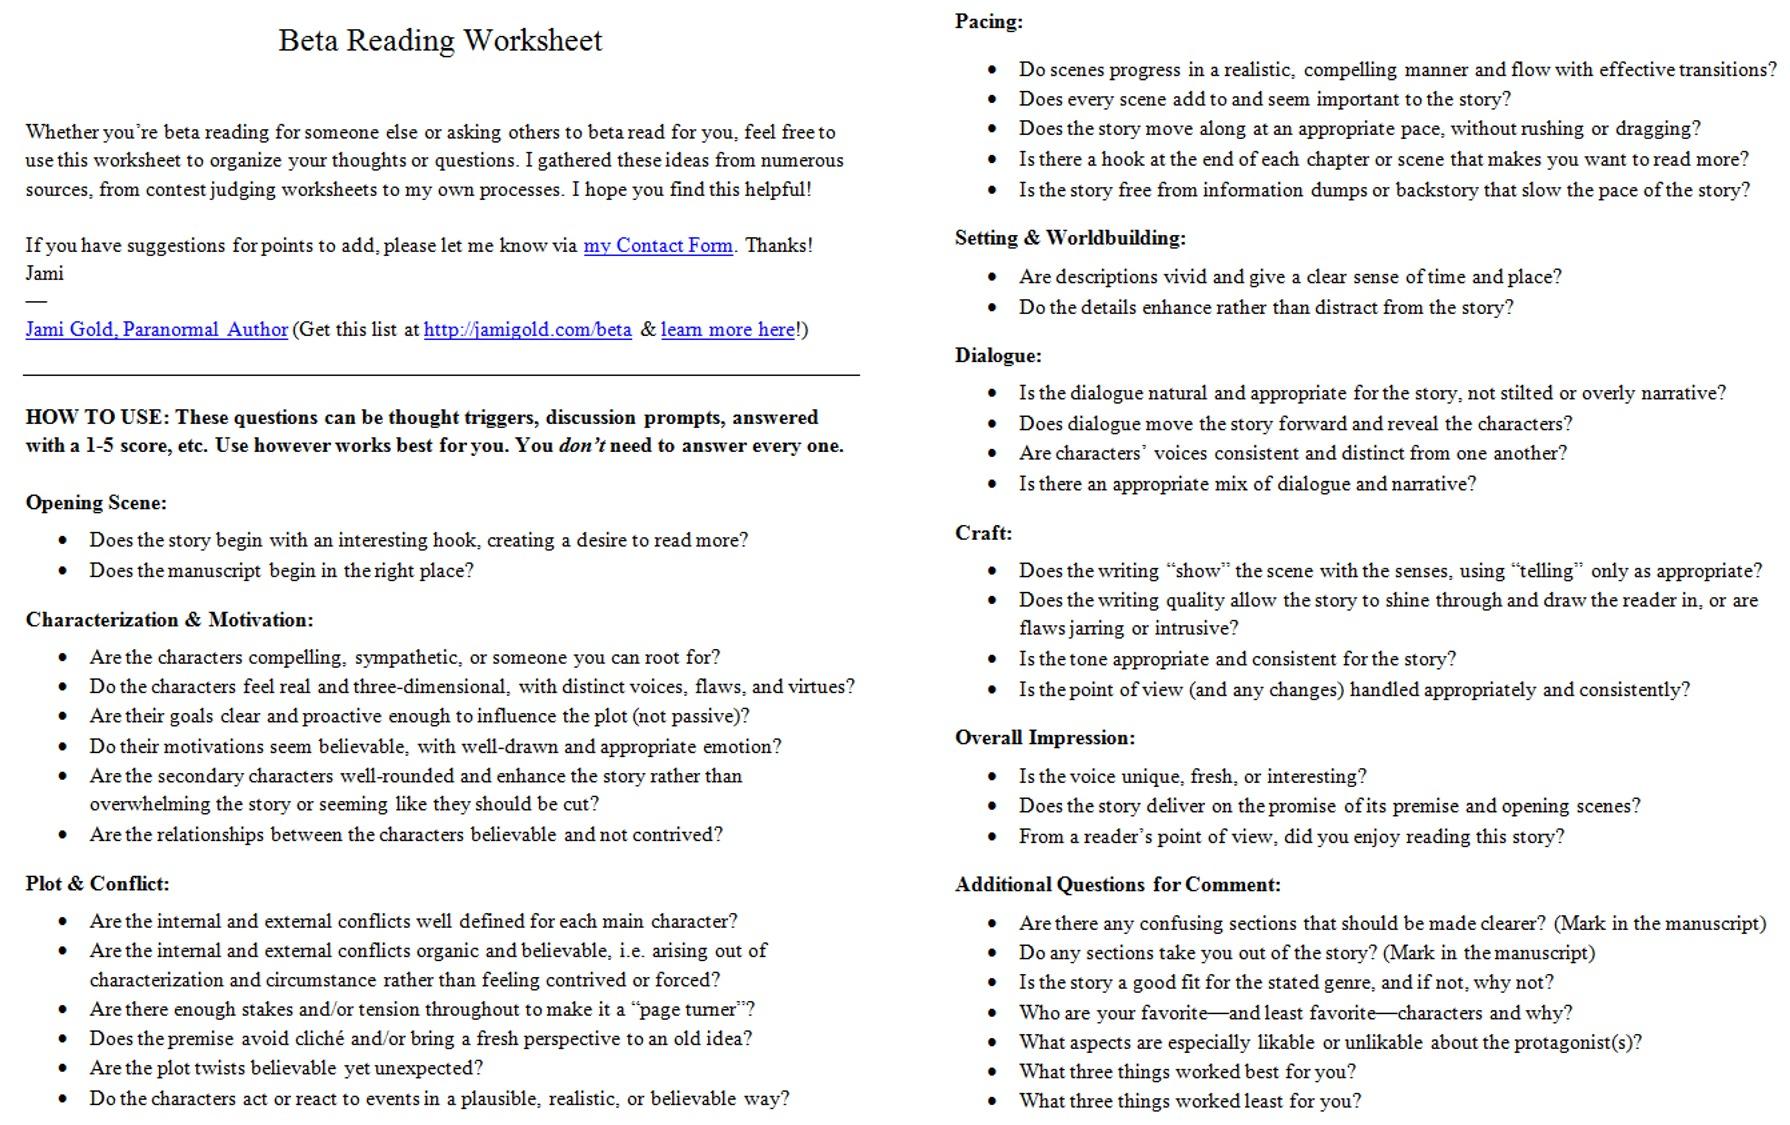 Aldiablosus  Remarkable Worksheets For Writers  Jami Gold Paranormal Author With Entrancing Screen Shot Of The Twopage Beta Reading Worksheet With Astonishing Simplifying Fraction Worksheets Also Logic Model Worksheet In Addition Printable Math Worksheets For Th Grade And Counting To  Worksheets As Well As Order Of Operations Worksheets Th Grade Additionally Pre K Pattern Worksheets From Jamigoldcom With Aldiablosus  Entrancing Worksheets For Writers  Jami Gold Paranormal Author With Astonishing Screen Shot Of The Twopage Beta Reading Worksheet And Remarkable Simplifying Fraction Worksheets Also Logic Model Worksheet In Addition Printable Math Worksheets For Th Grade From Jamigoldcom